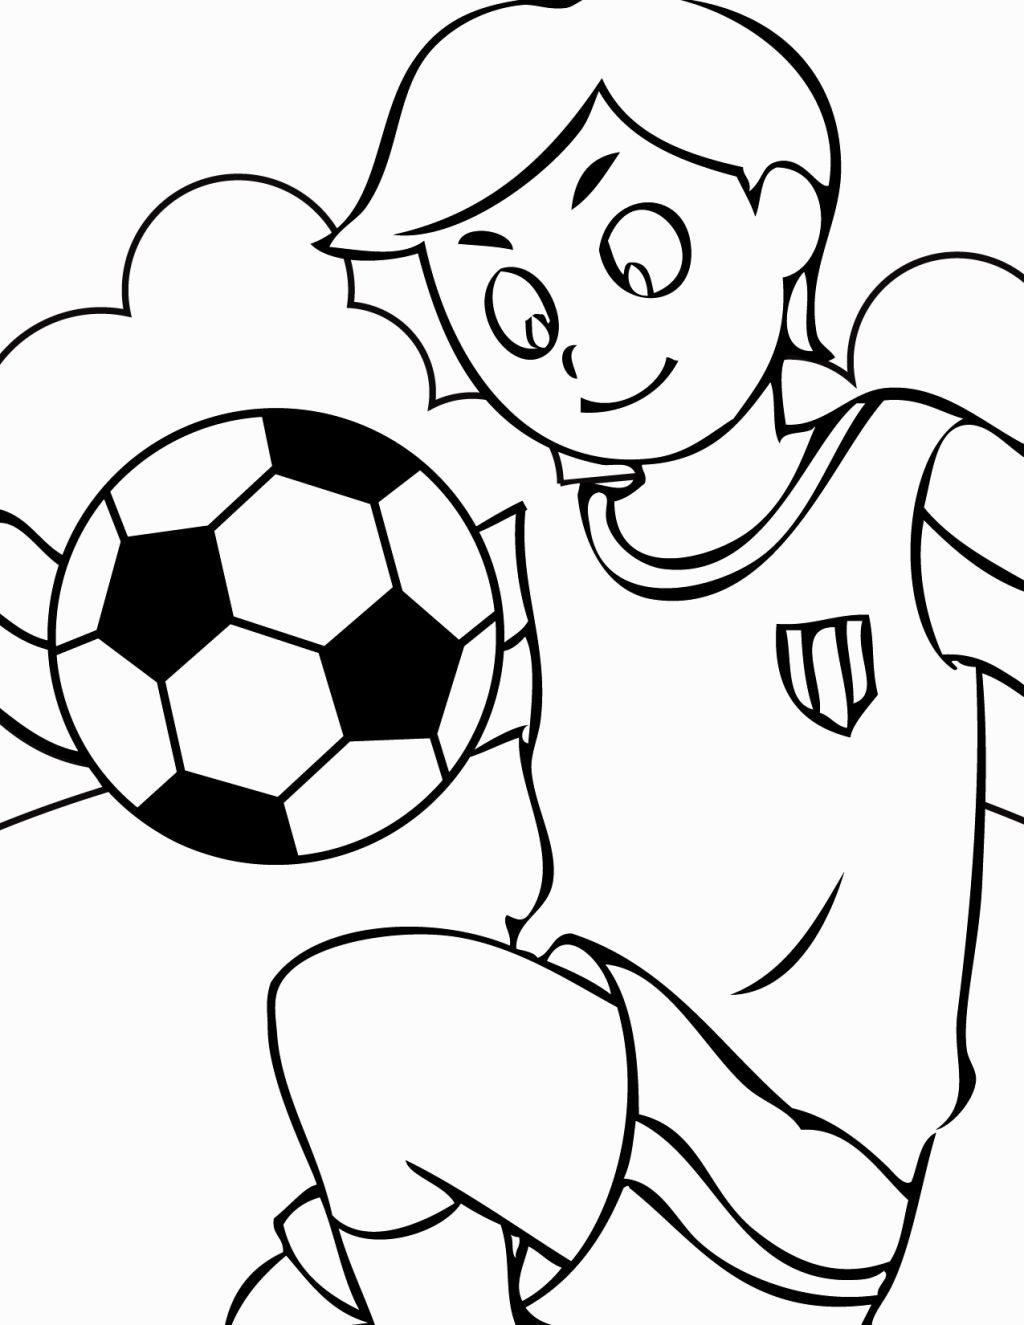 Sports Coloring Pages Gambar